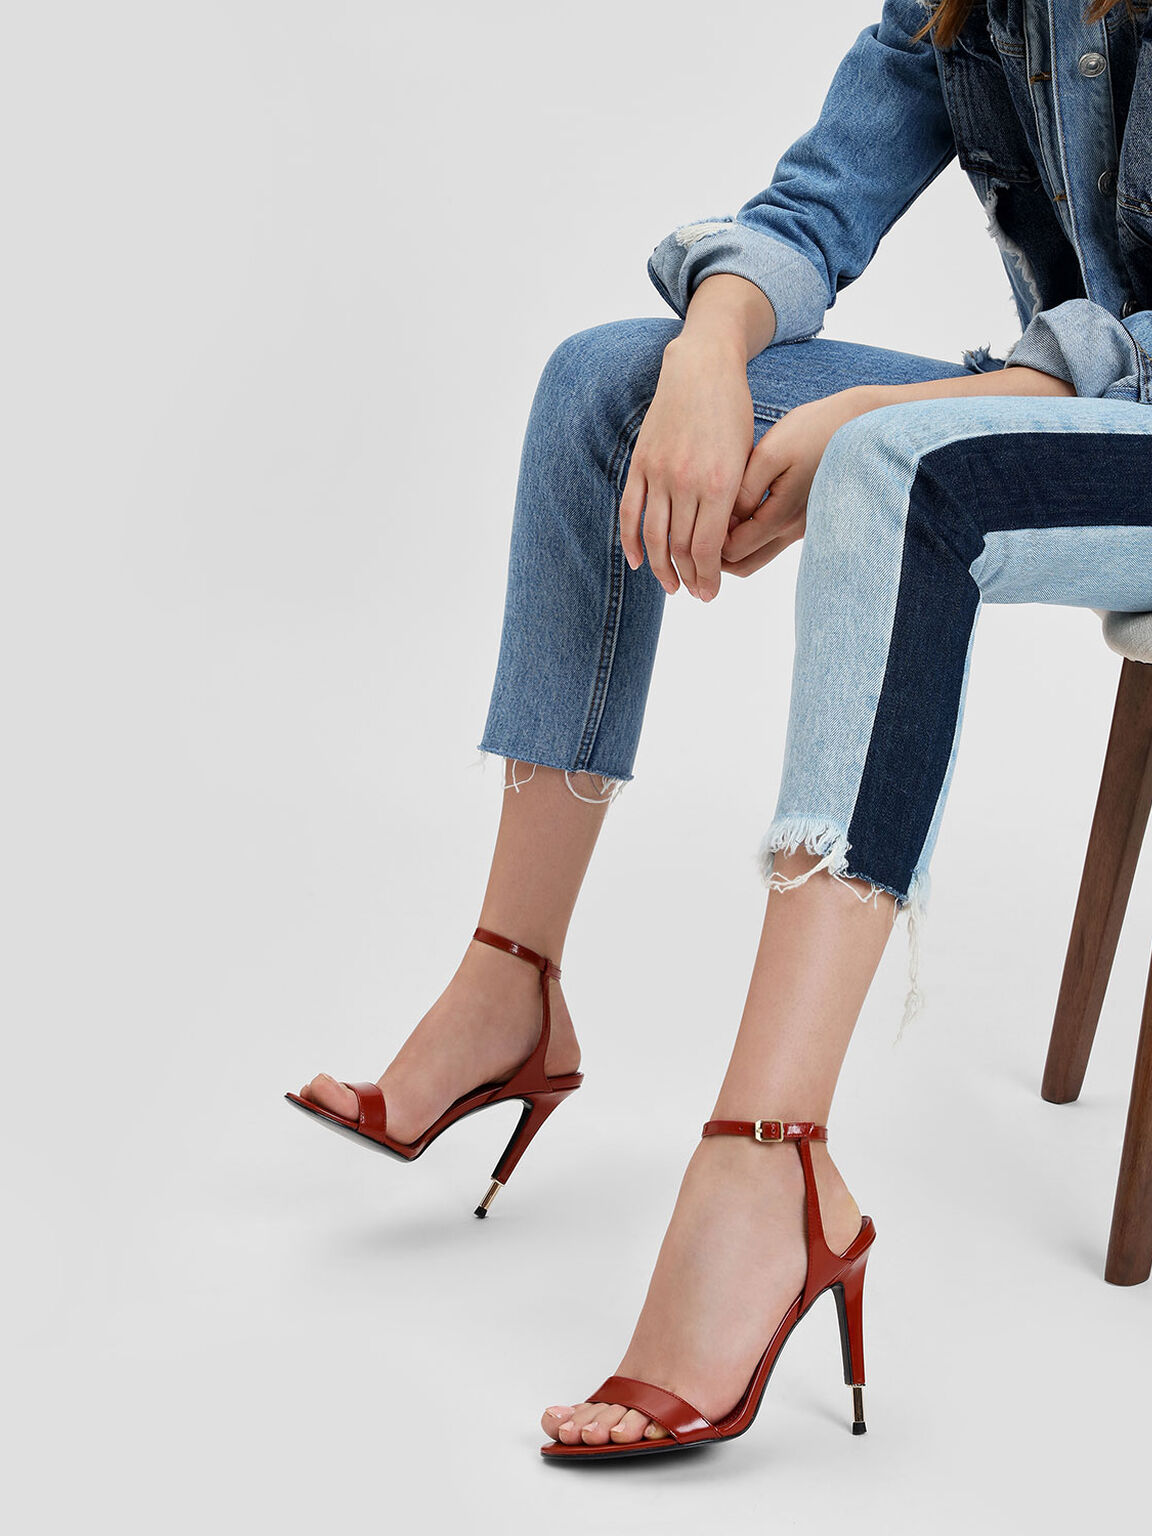 Stiletto Leather Sandals, Red, hi-res